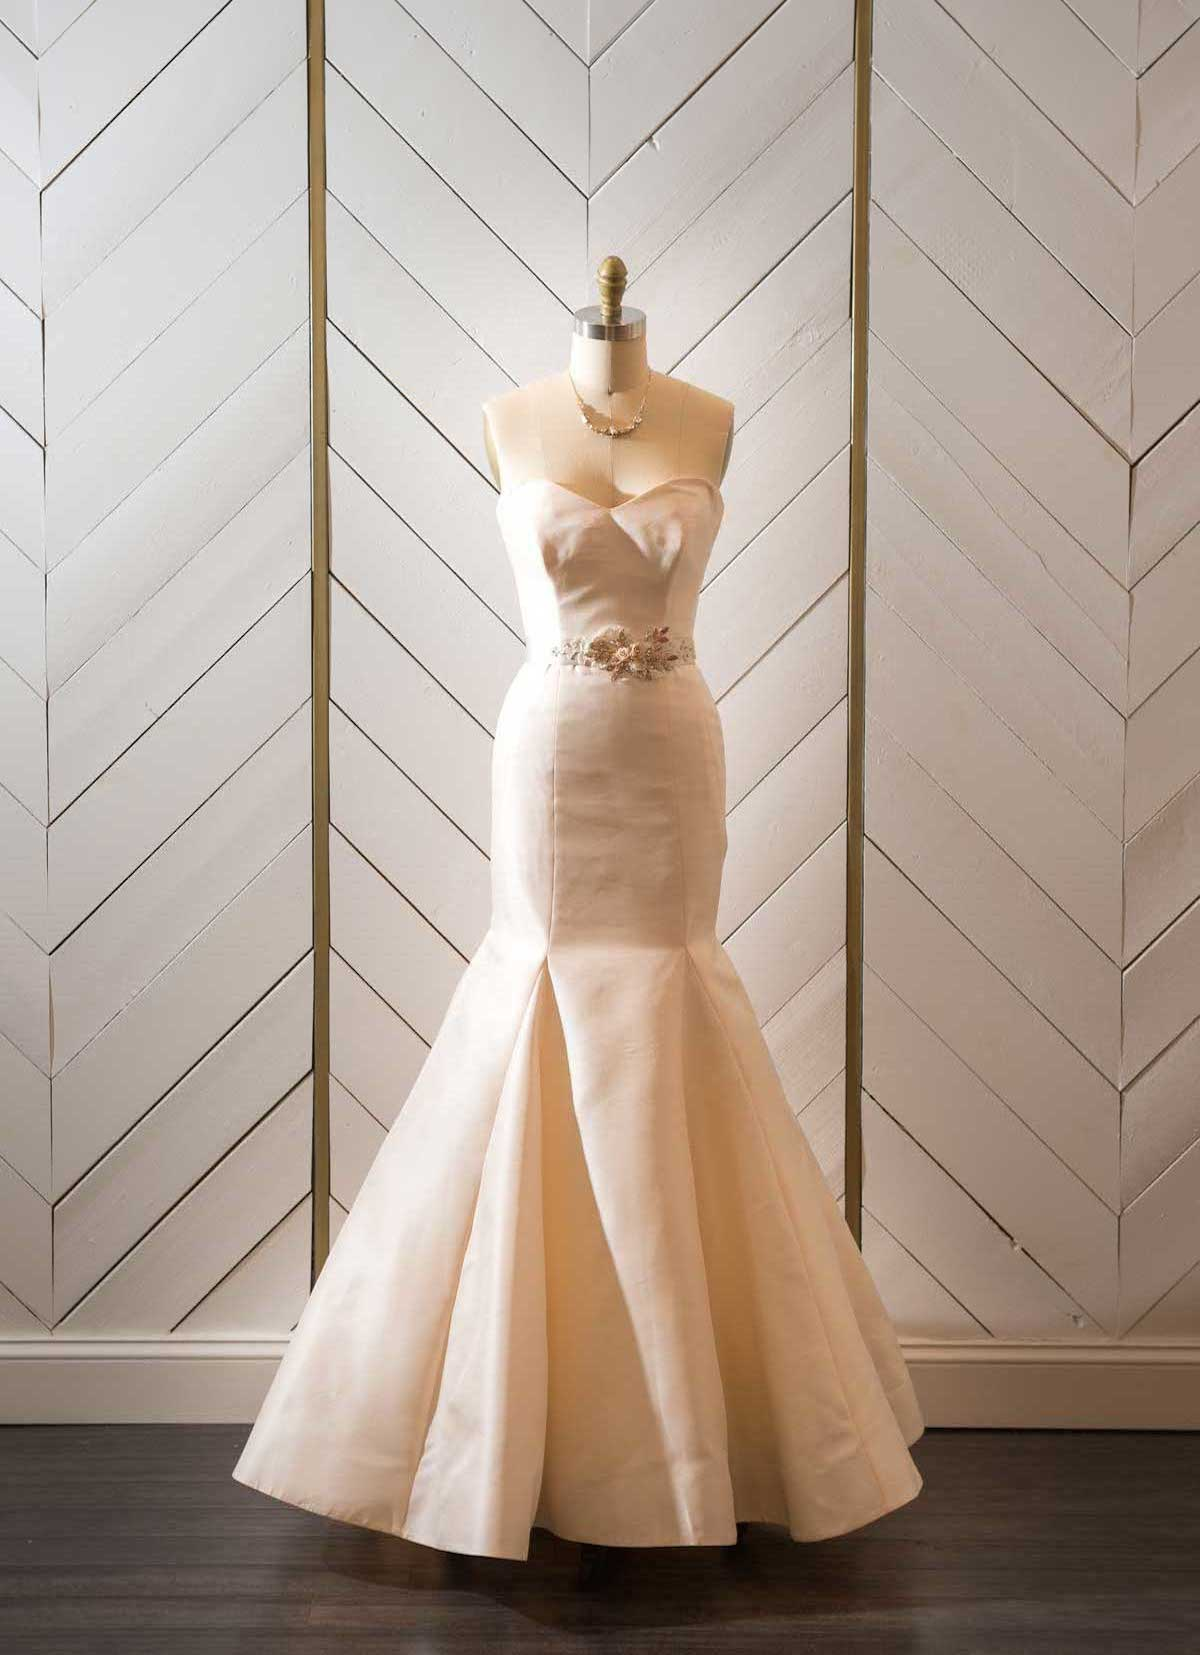 Love Couture Bridal Salon - Bridal Gowns, bridesmaid dresses, and ...